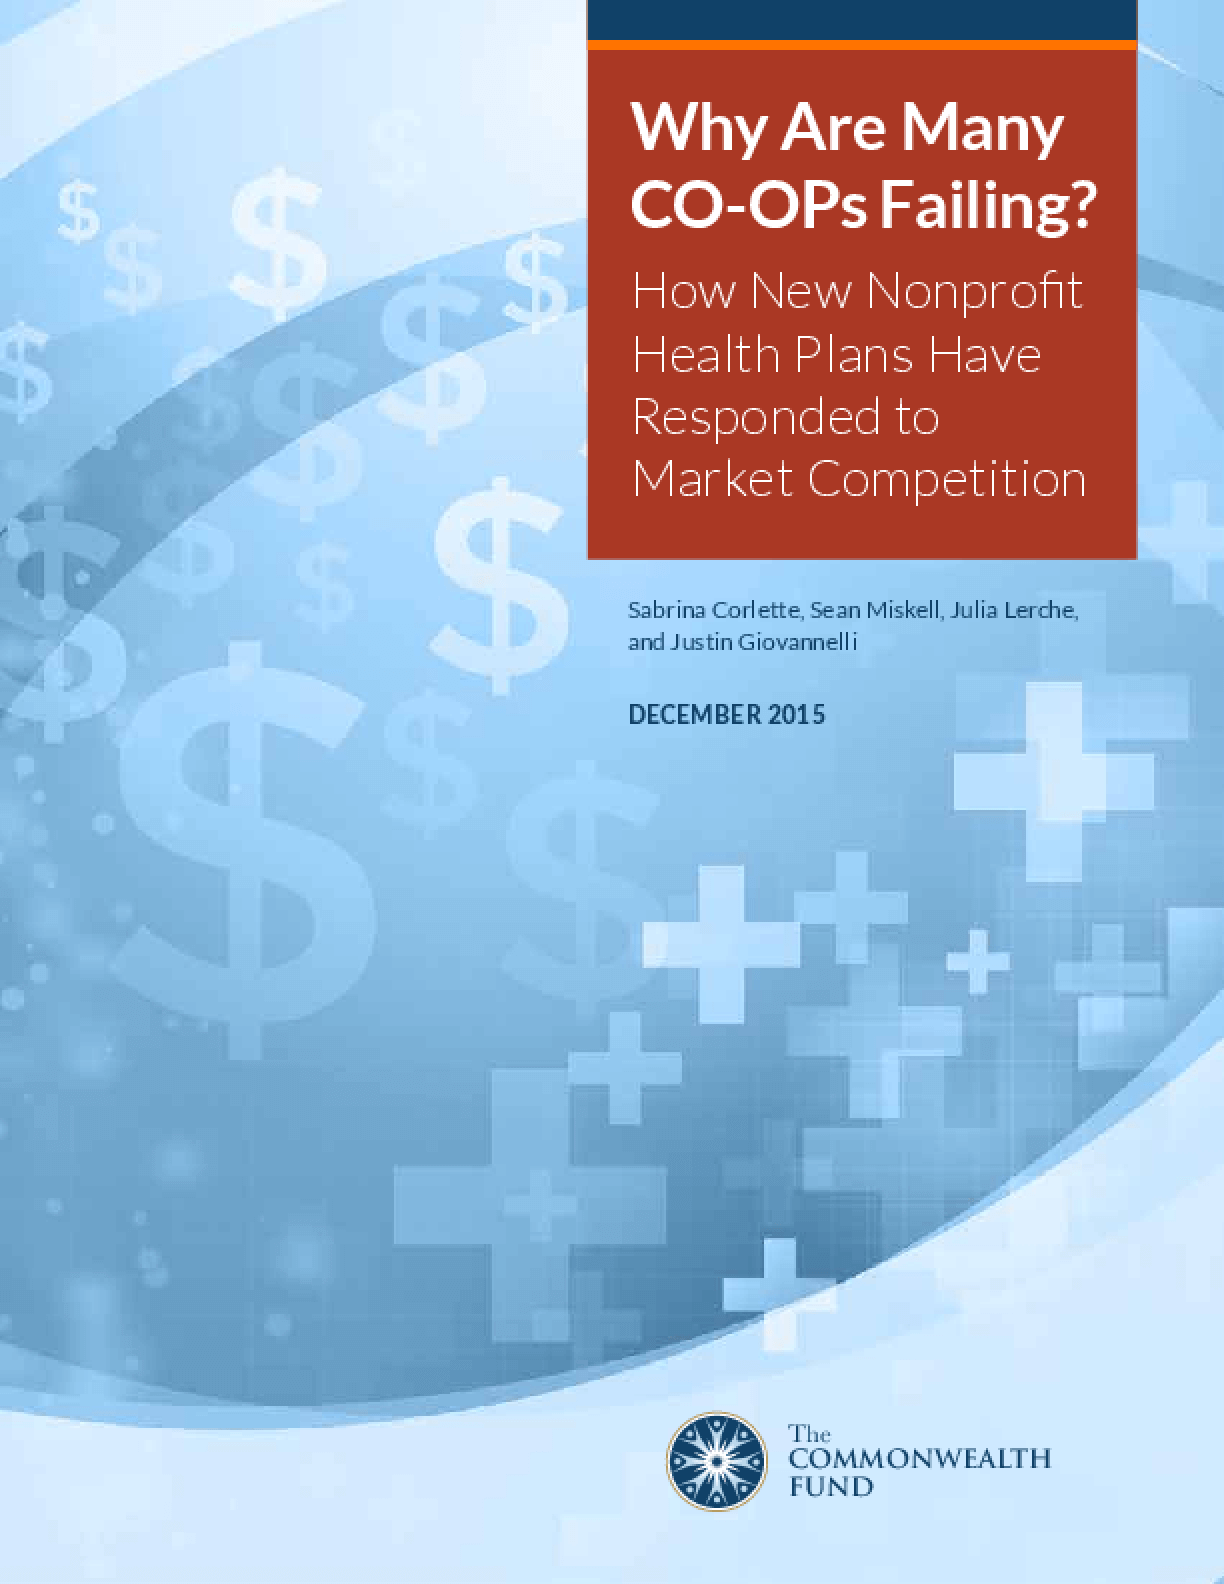 Why Are Many CO-OPs Failing? How New Nonprofit Health Plans Have Responded to Market Competition